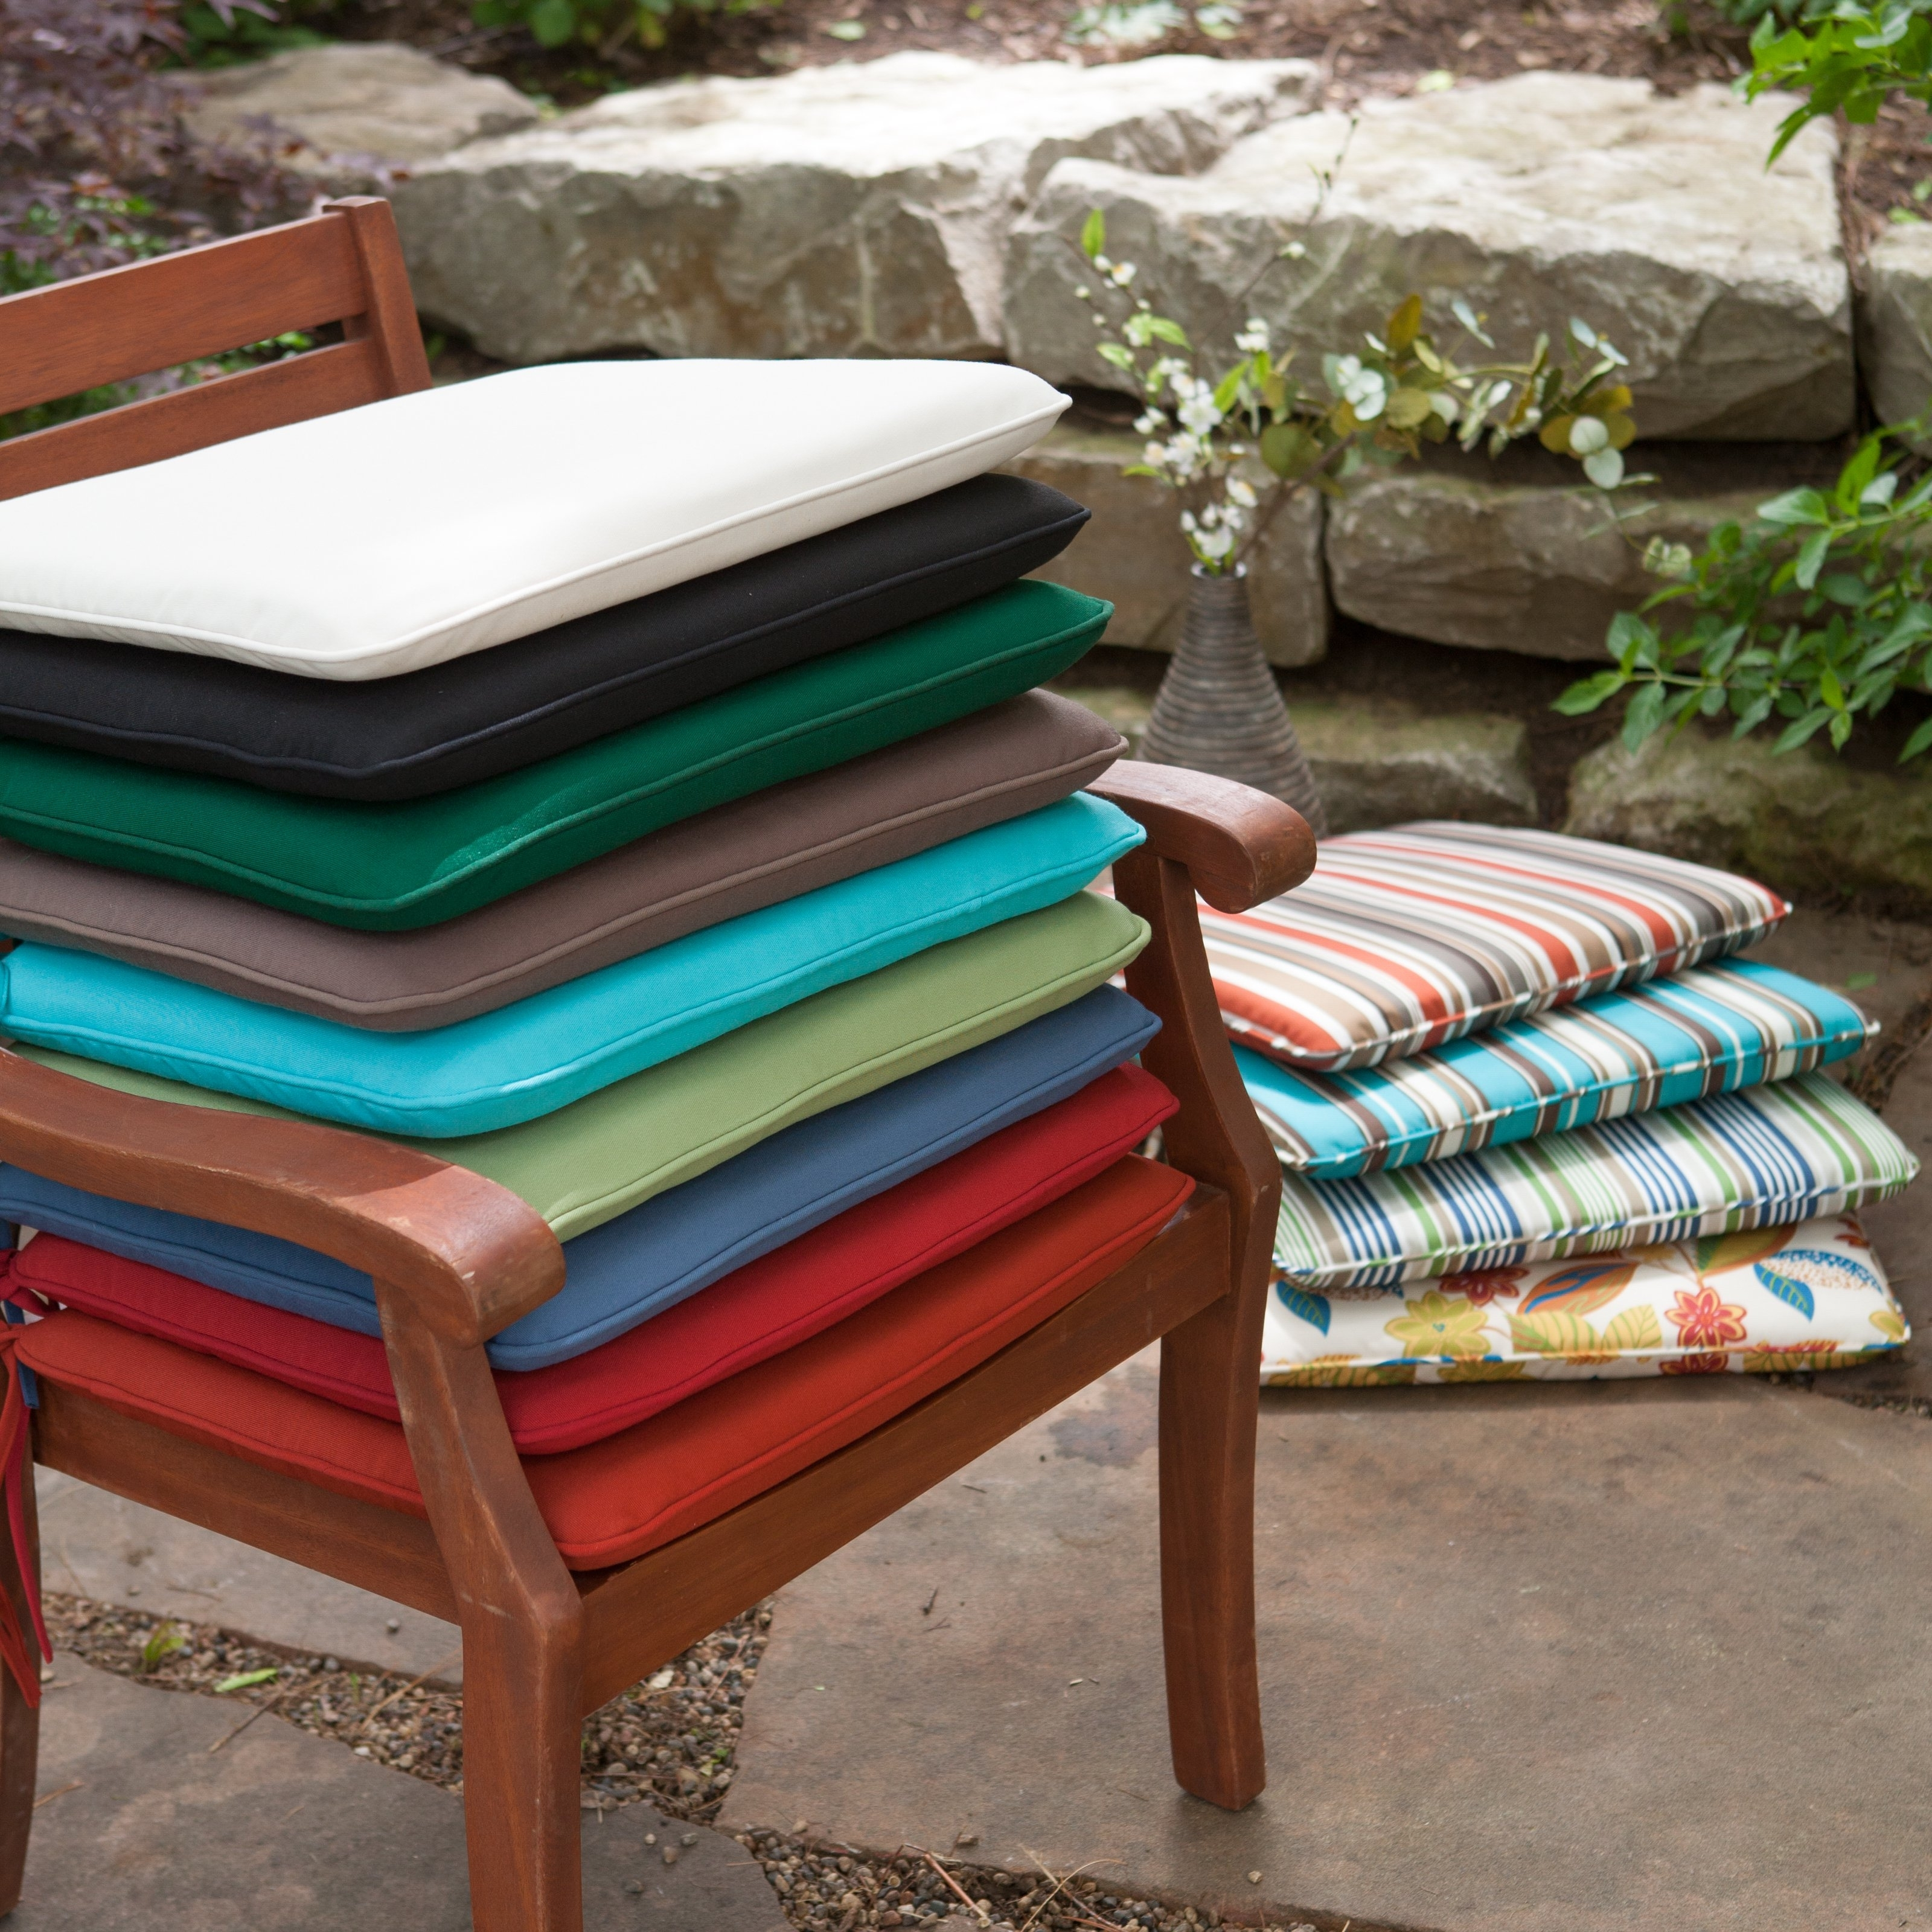 2018 Outdoor Rocking Chair Seat Cushions Modern Bench Cushion Ideas For Rocking Chair Cushions For Outdoor (View 1 of 15)